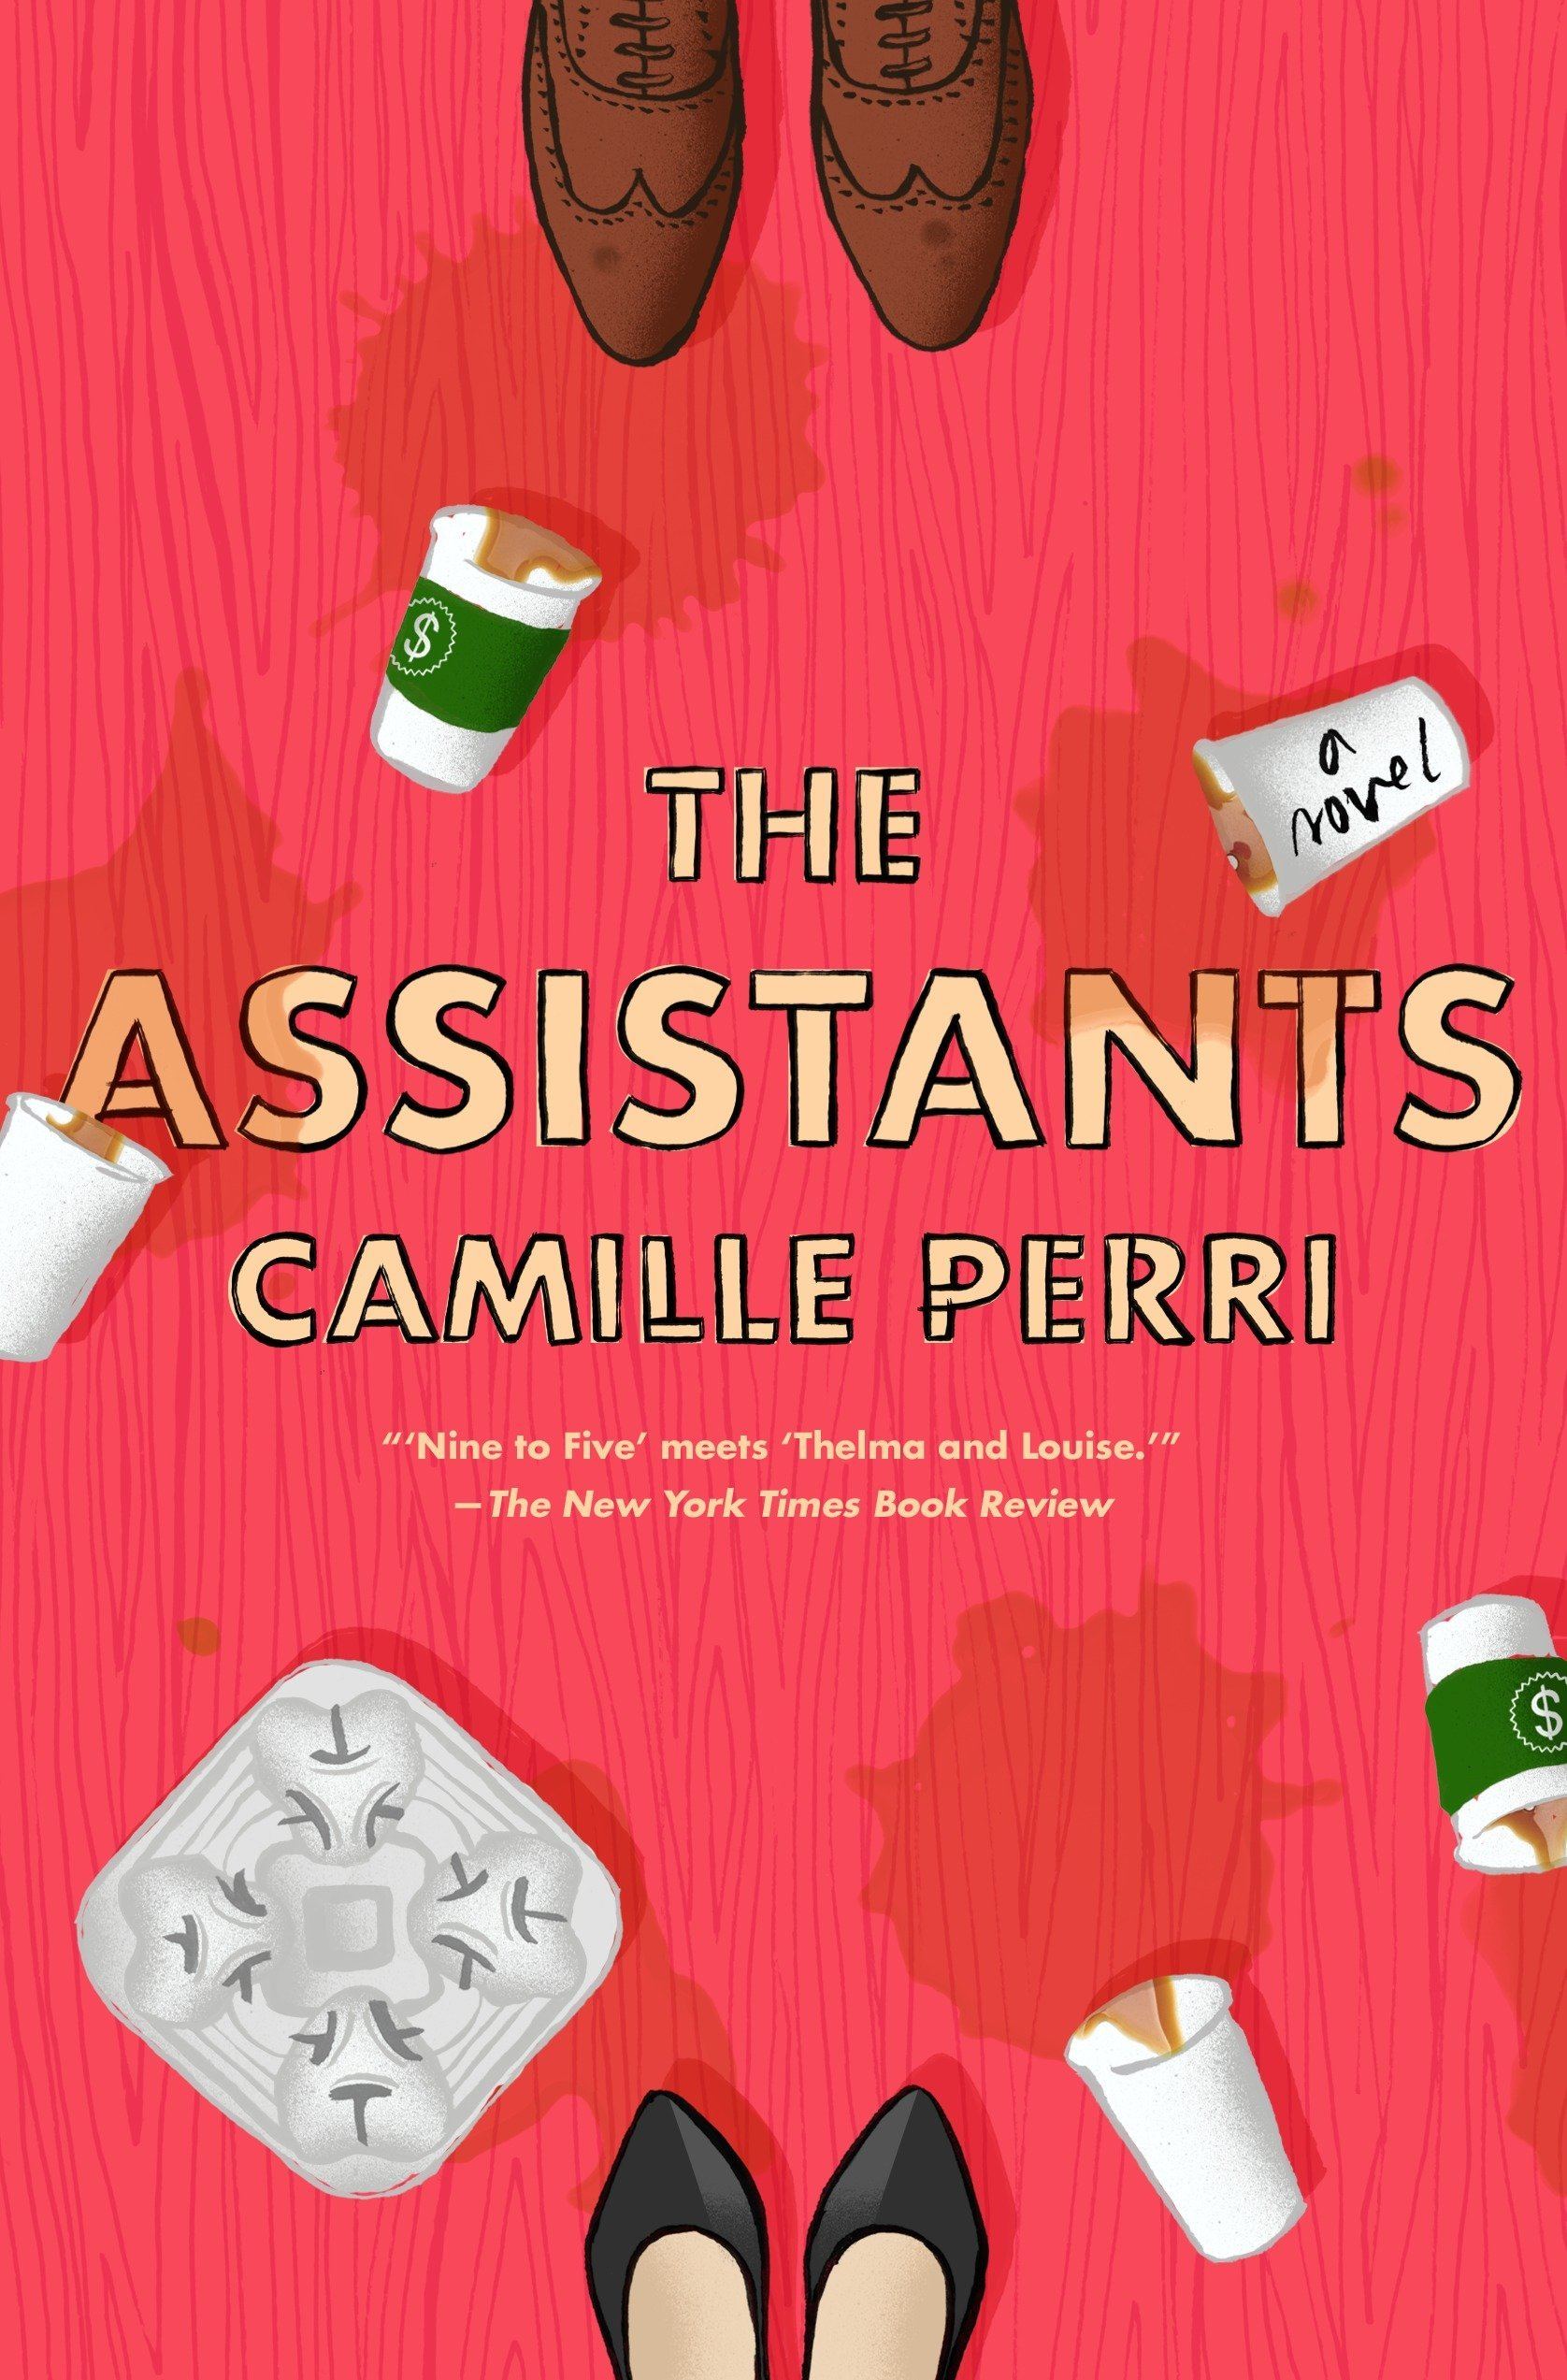 Romance Books Like The Bold Type, cover of the Assistants by Camille Perri, books